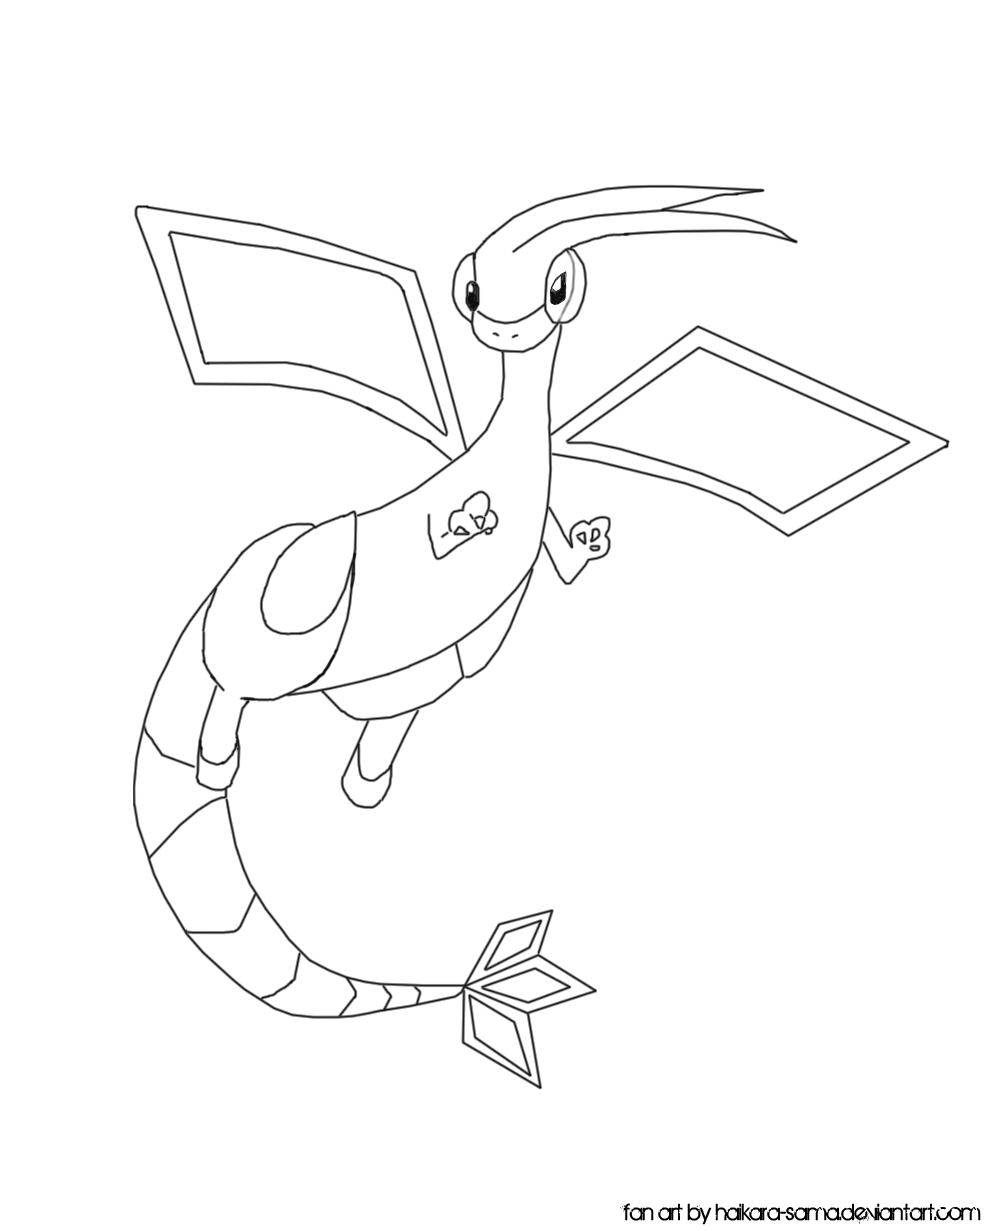 flygon coloring pages - photo#4